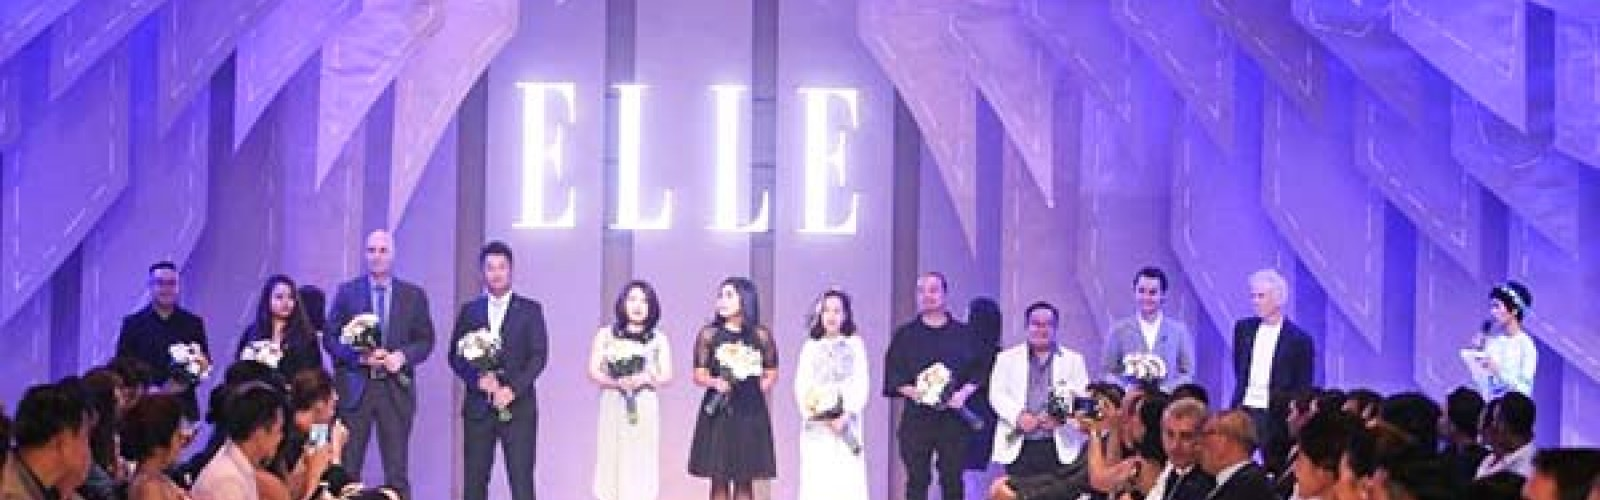 Dalat Hasfarm's flowers showing off their beauty At ELLE FASHION JOURNEY 2016